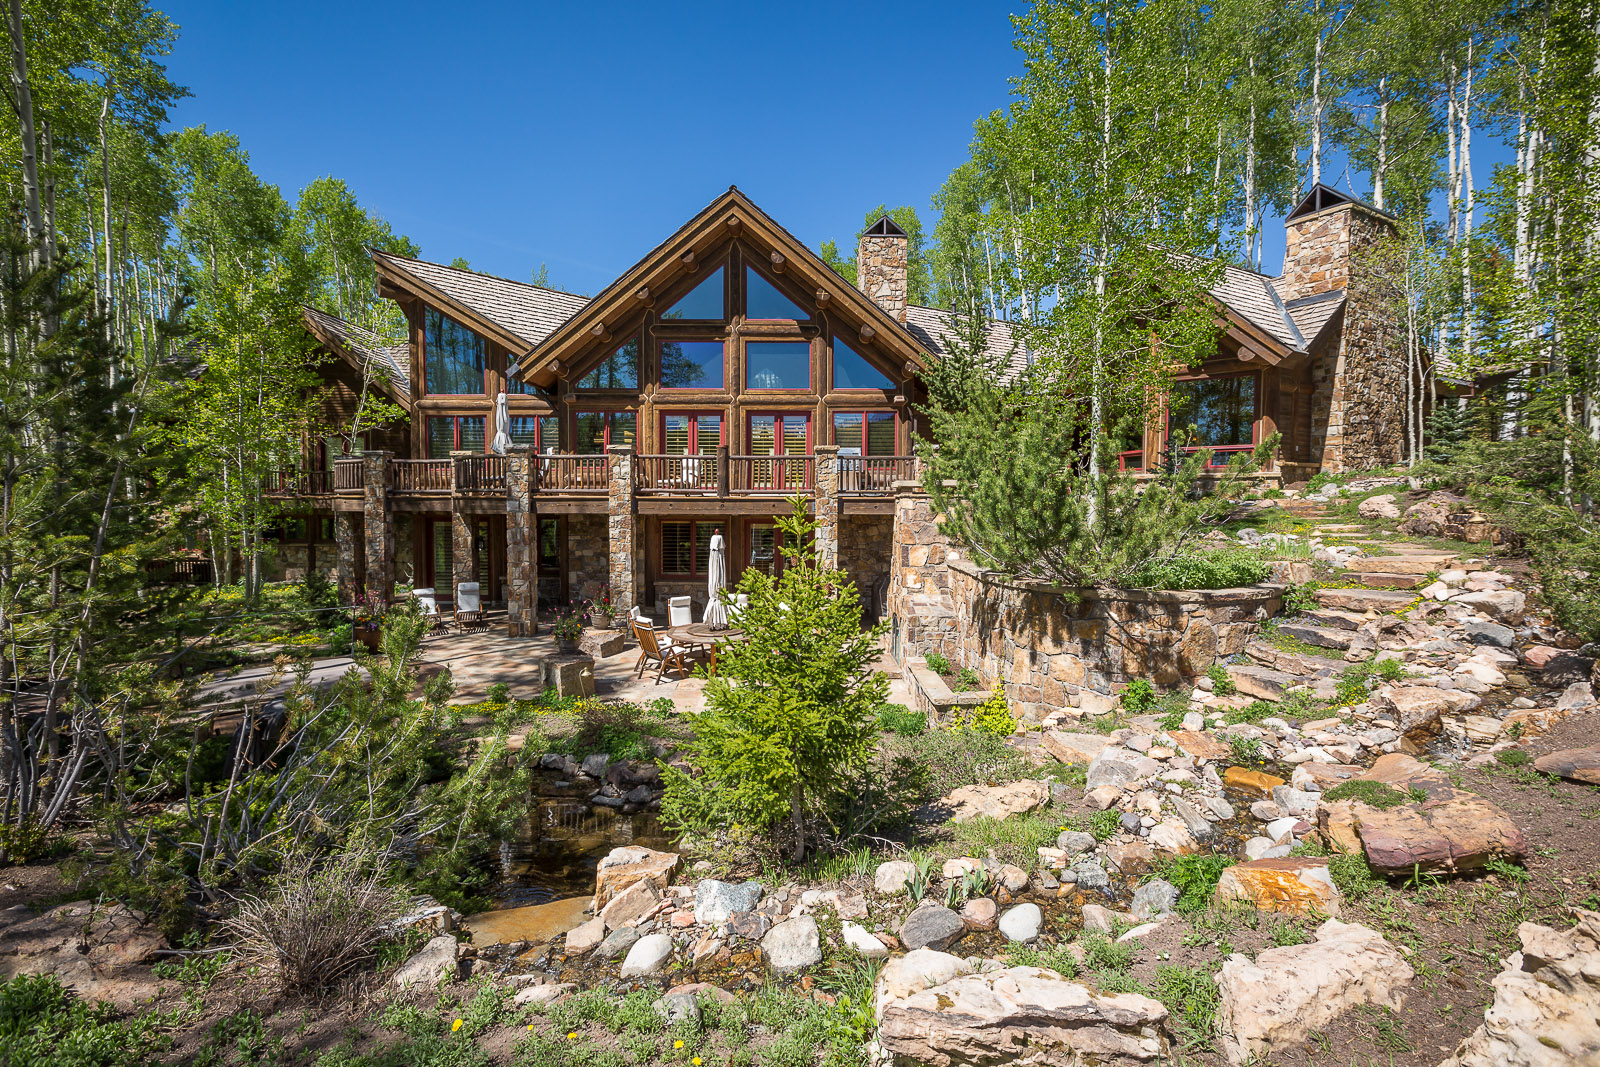 Single Family Home for Sale at 221 Touchdown Drive Telluride, Colorado 81435 United States